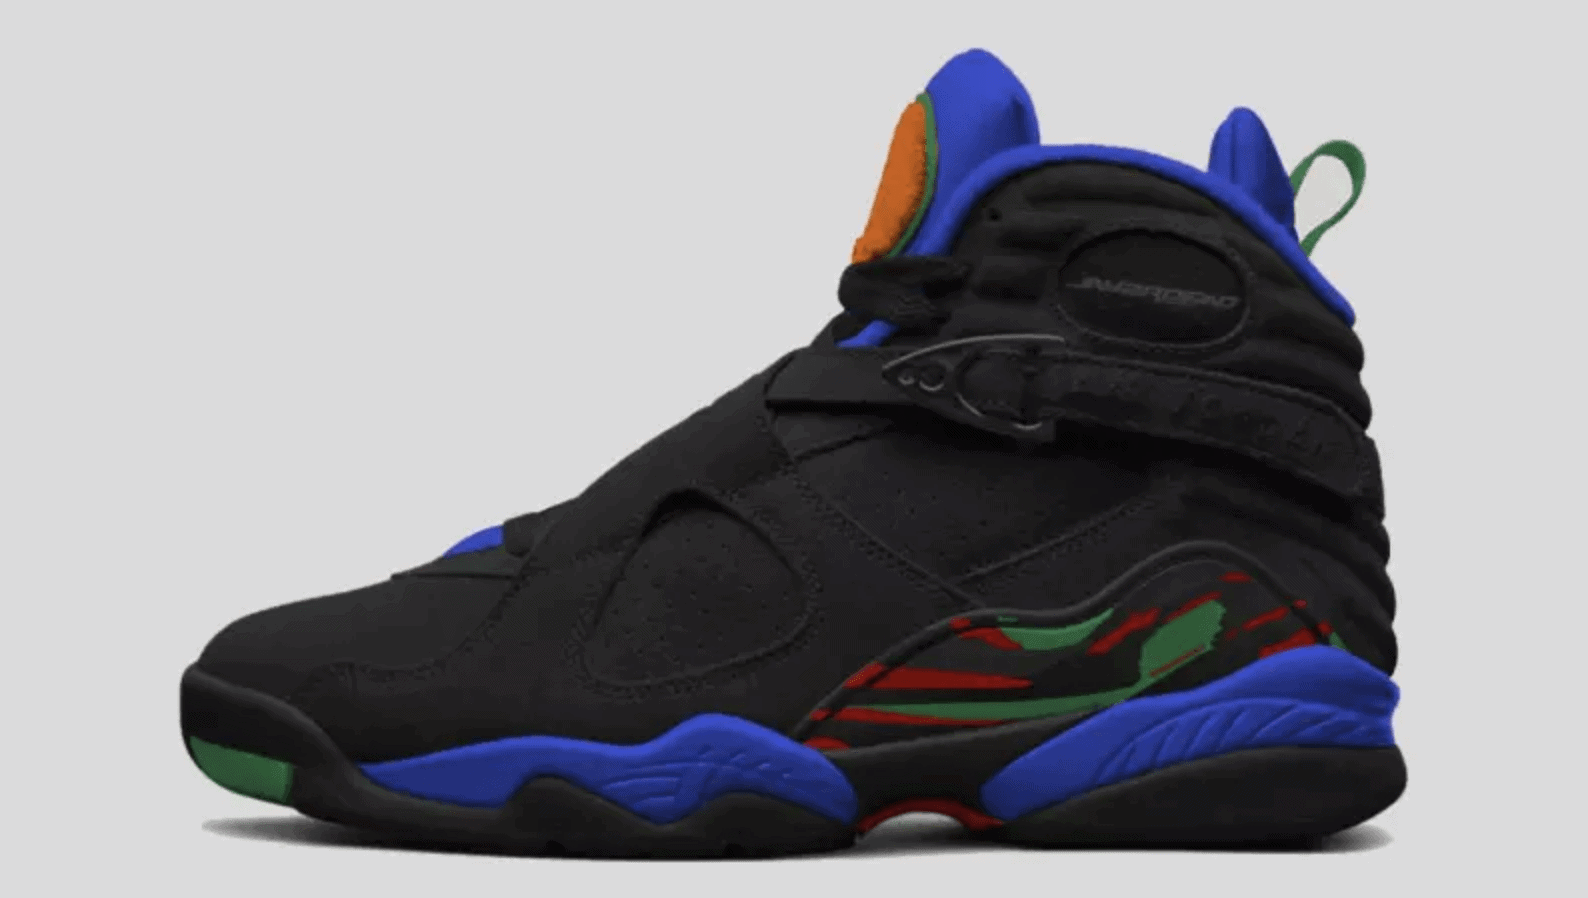 The Air Jordan reign of 2018 continues. With an already bursting release lineup for the year, Jordan Brand is adding a Jordan 8 to their Winter itinerary.